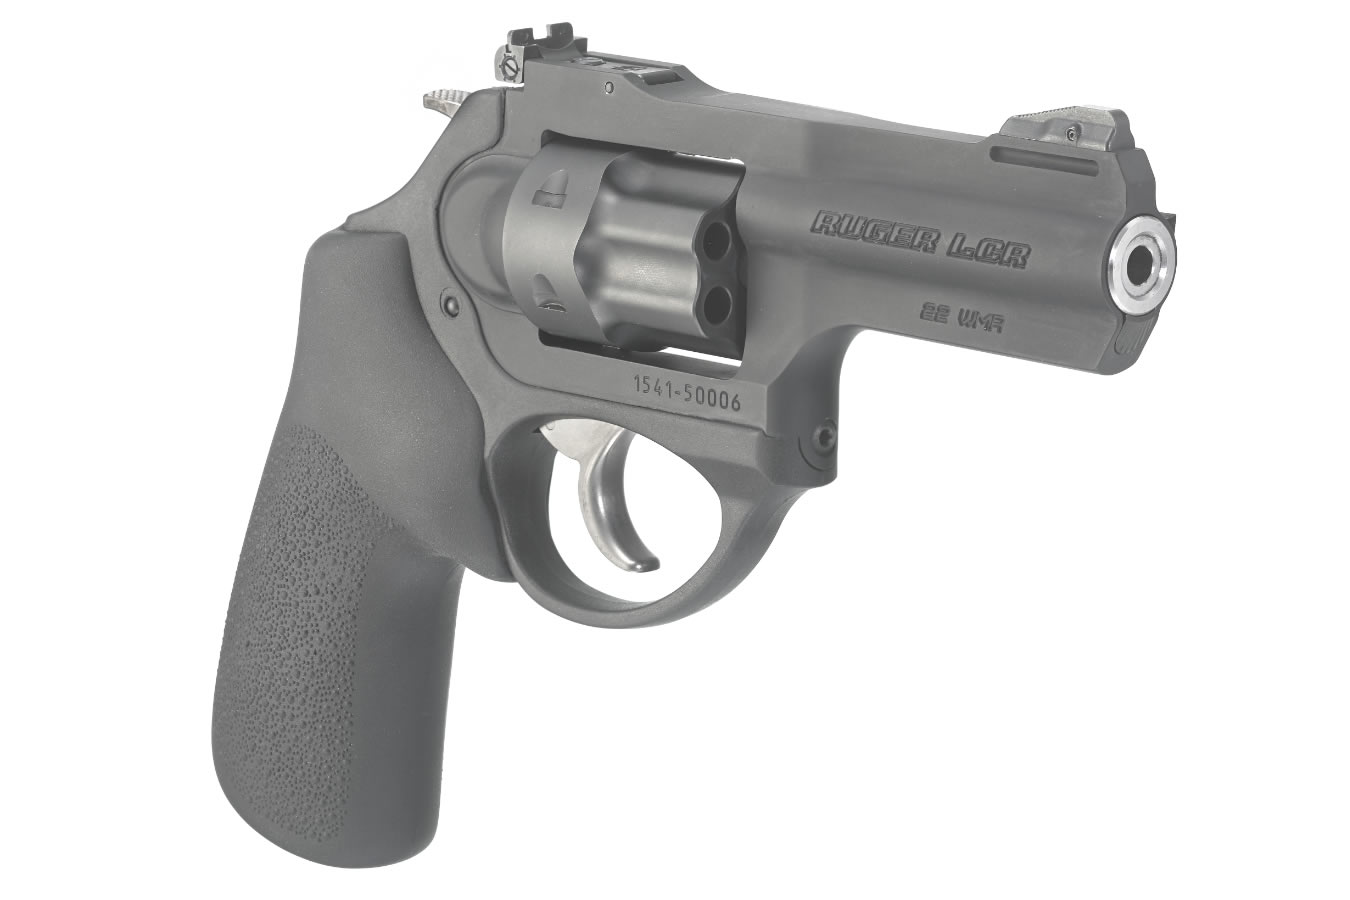 LCRX 22WMR DOUBLE-ACTION REVOLVER